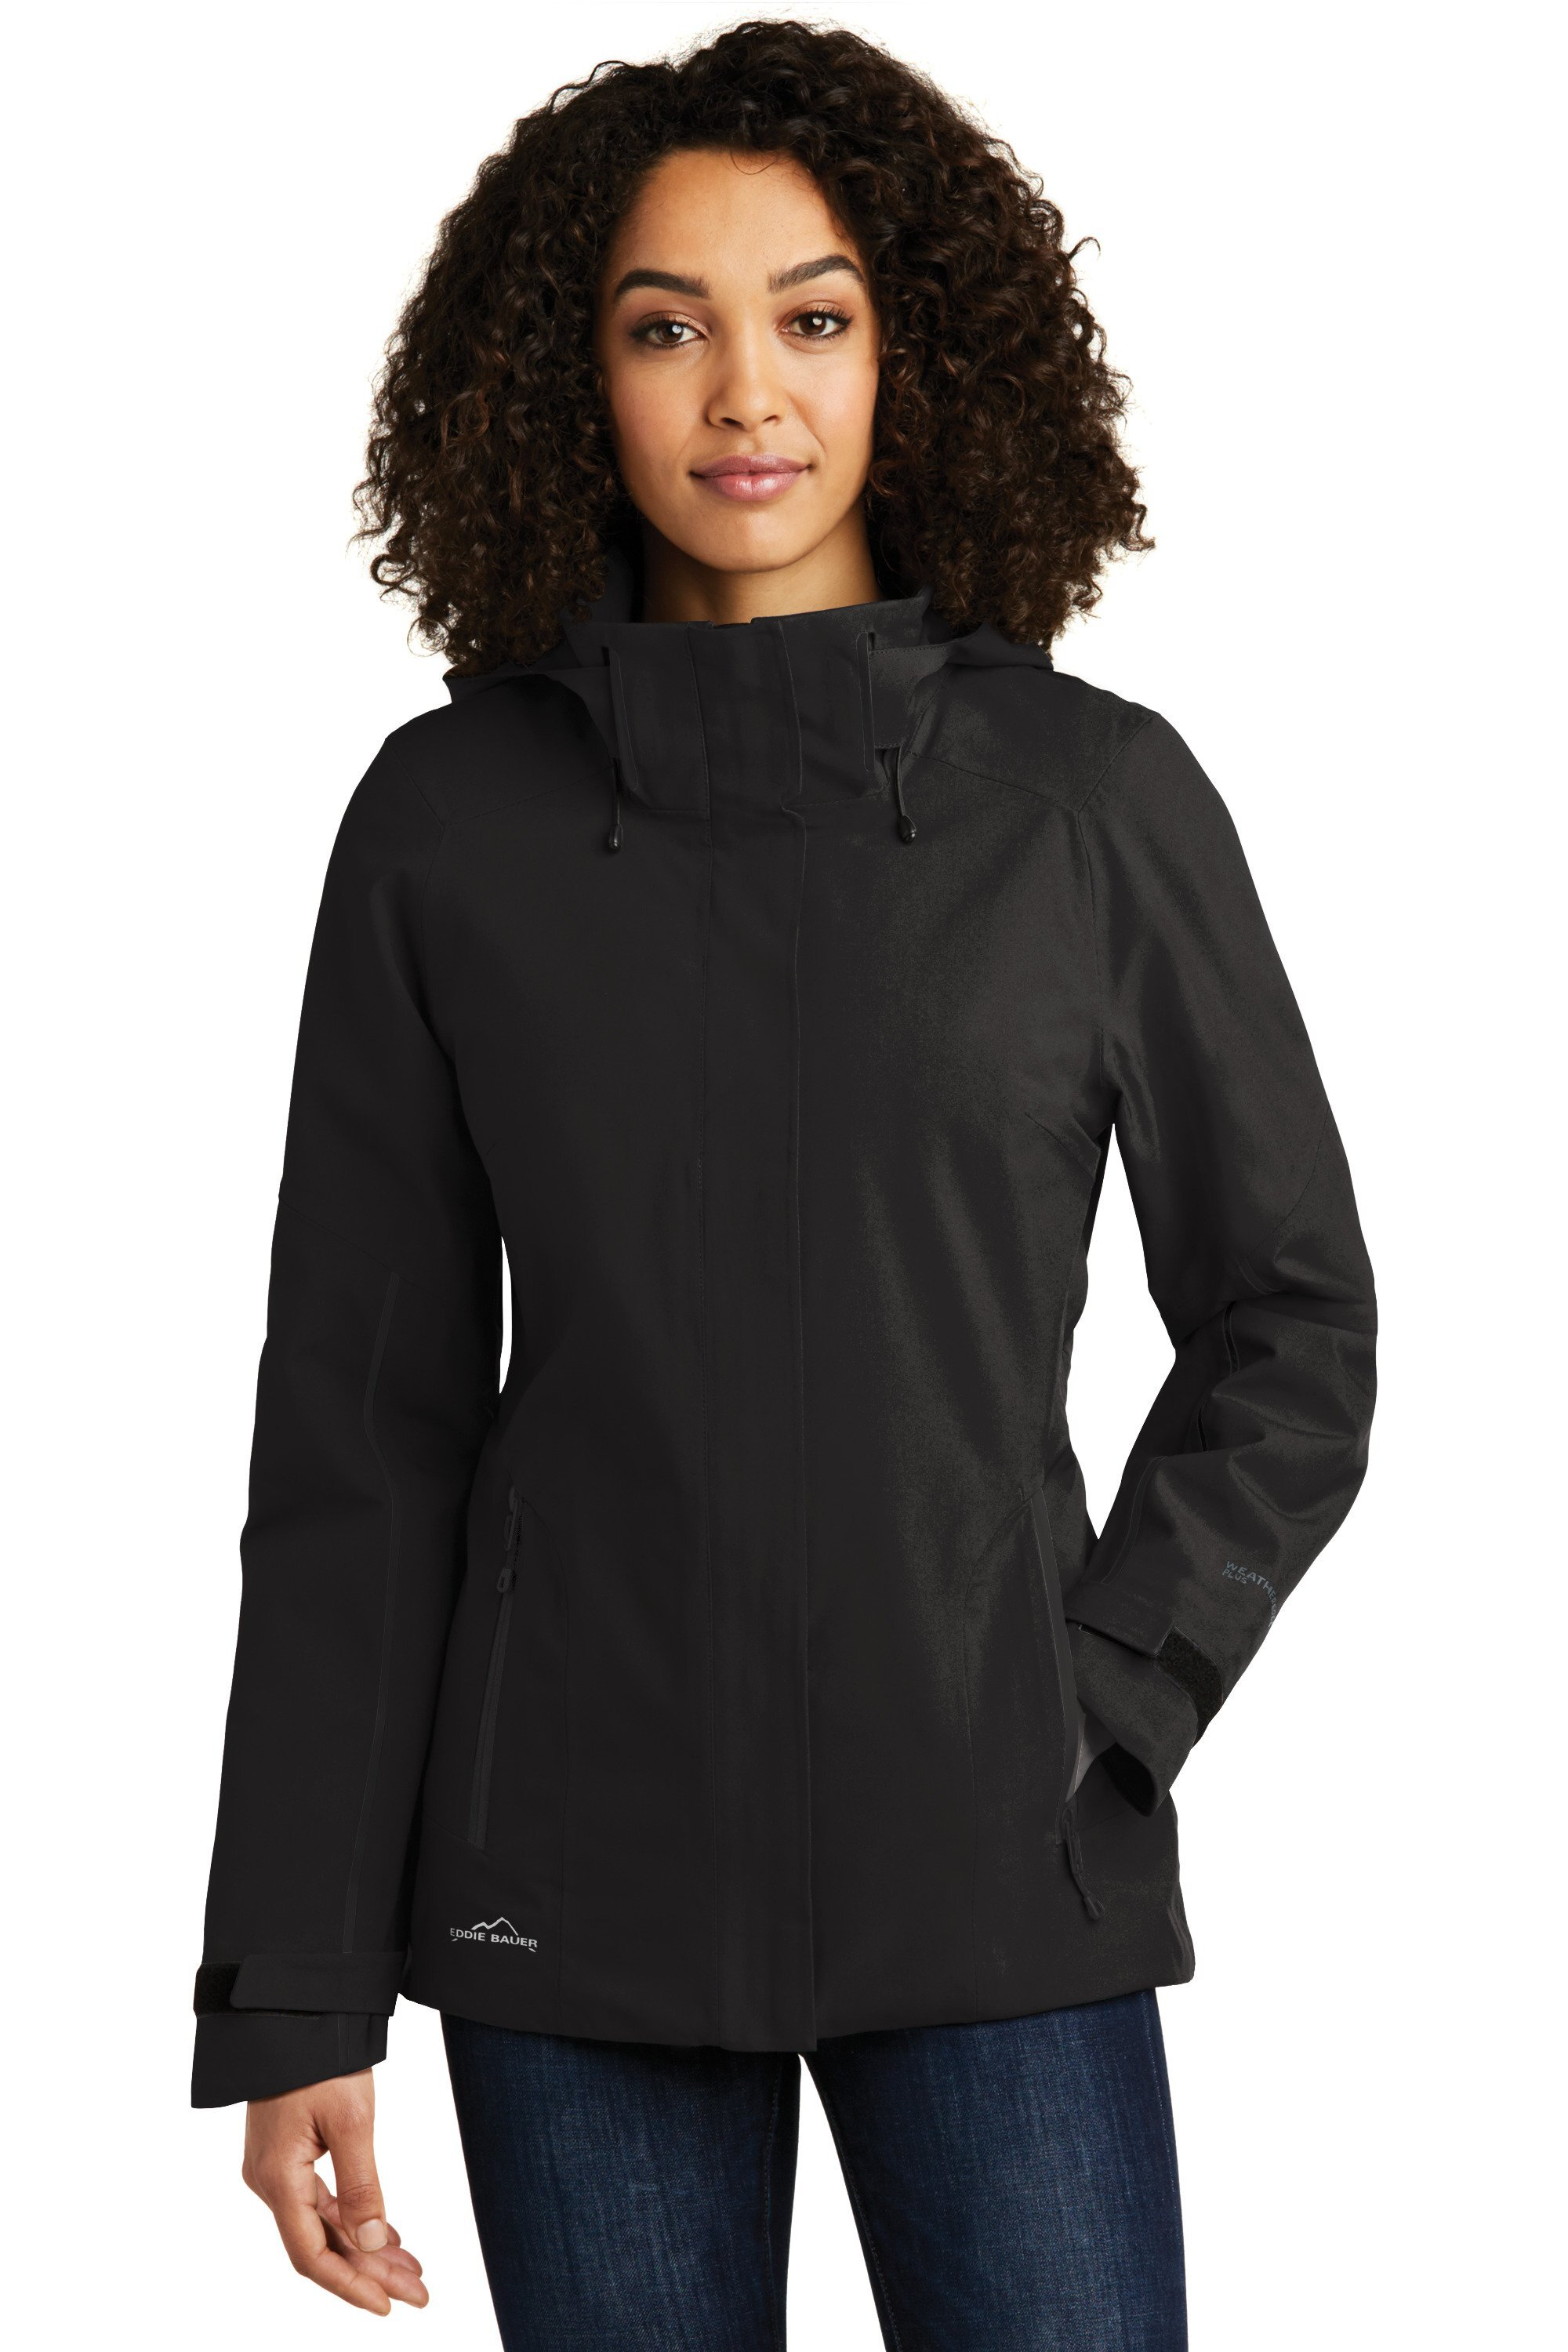 Eddie Bauer® WeatherEdge® Plus Insulated Ladies' Jacket